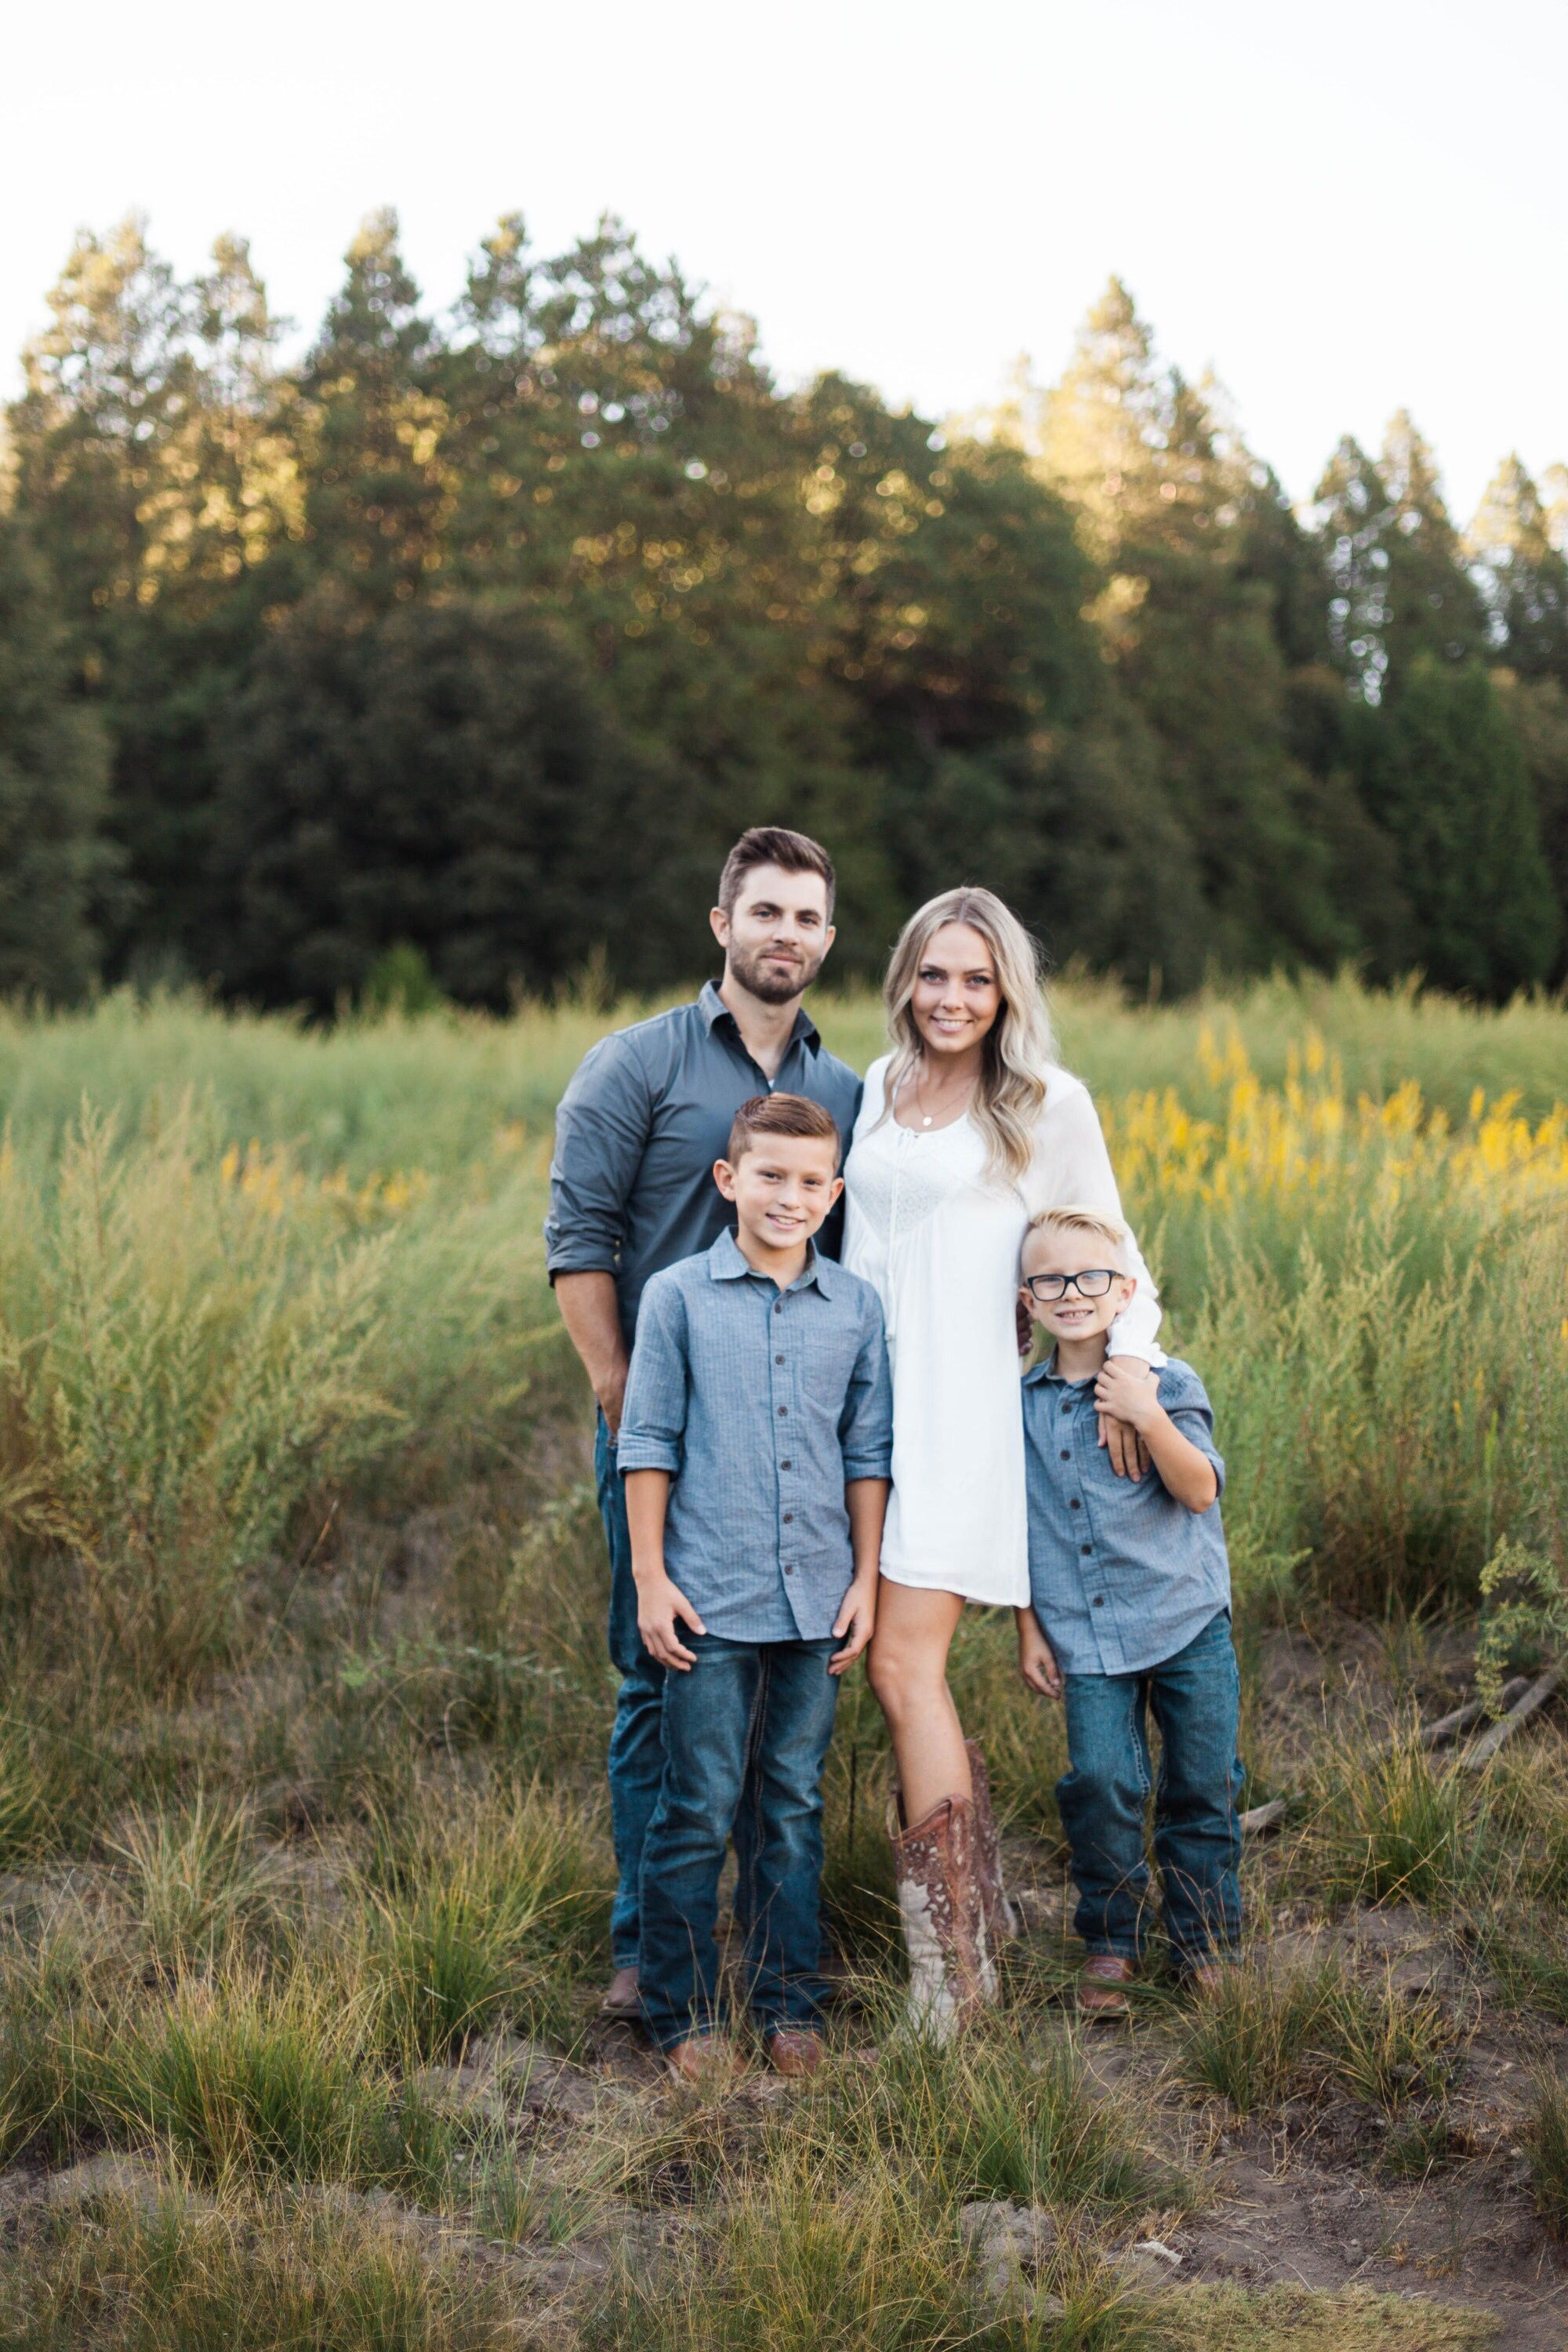 Cute family photos cute family pose ideas cute family family photos in field